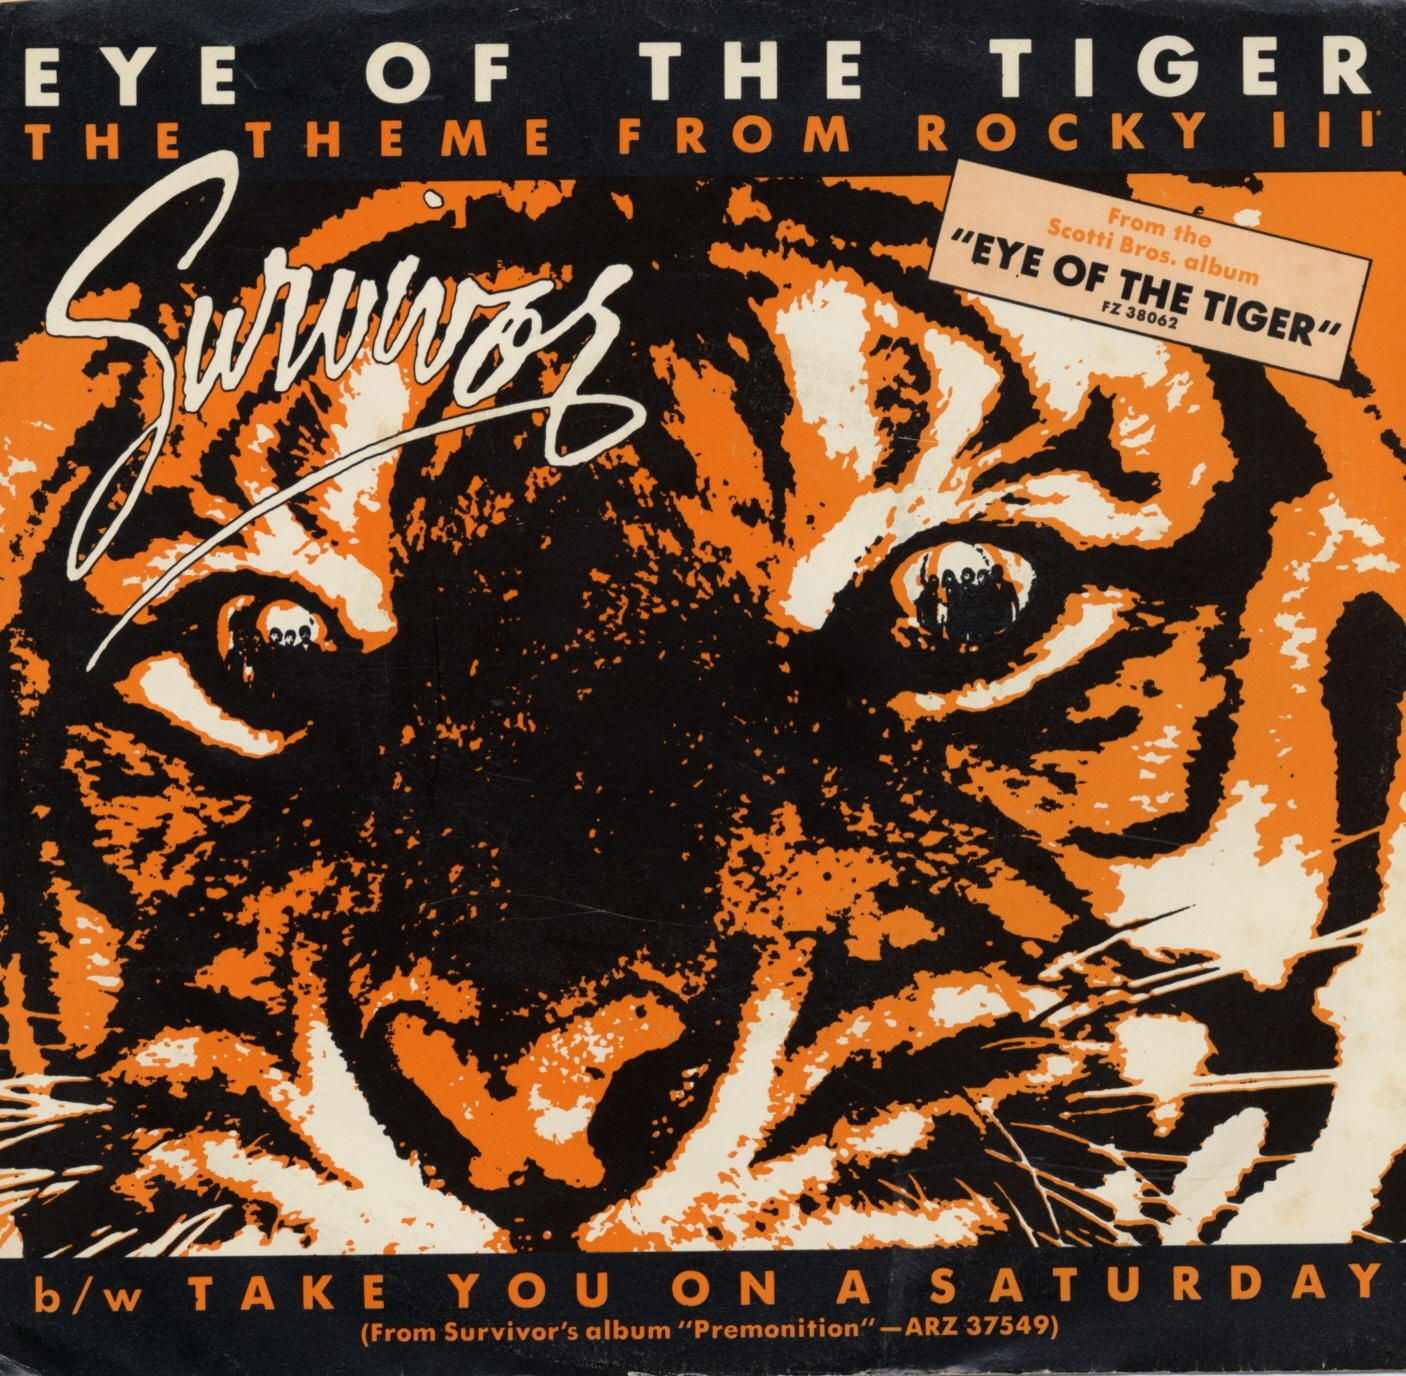 Eye of the tiger (Foto: Survivor)